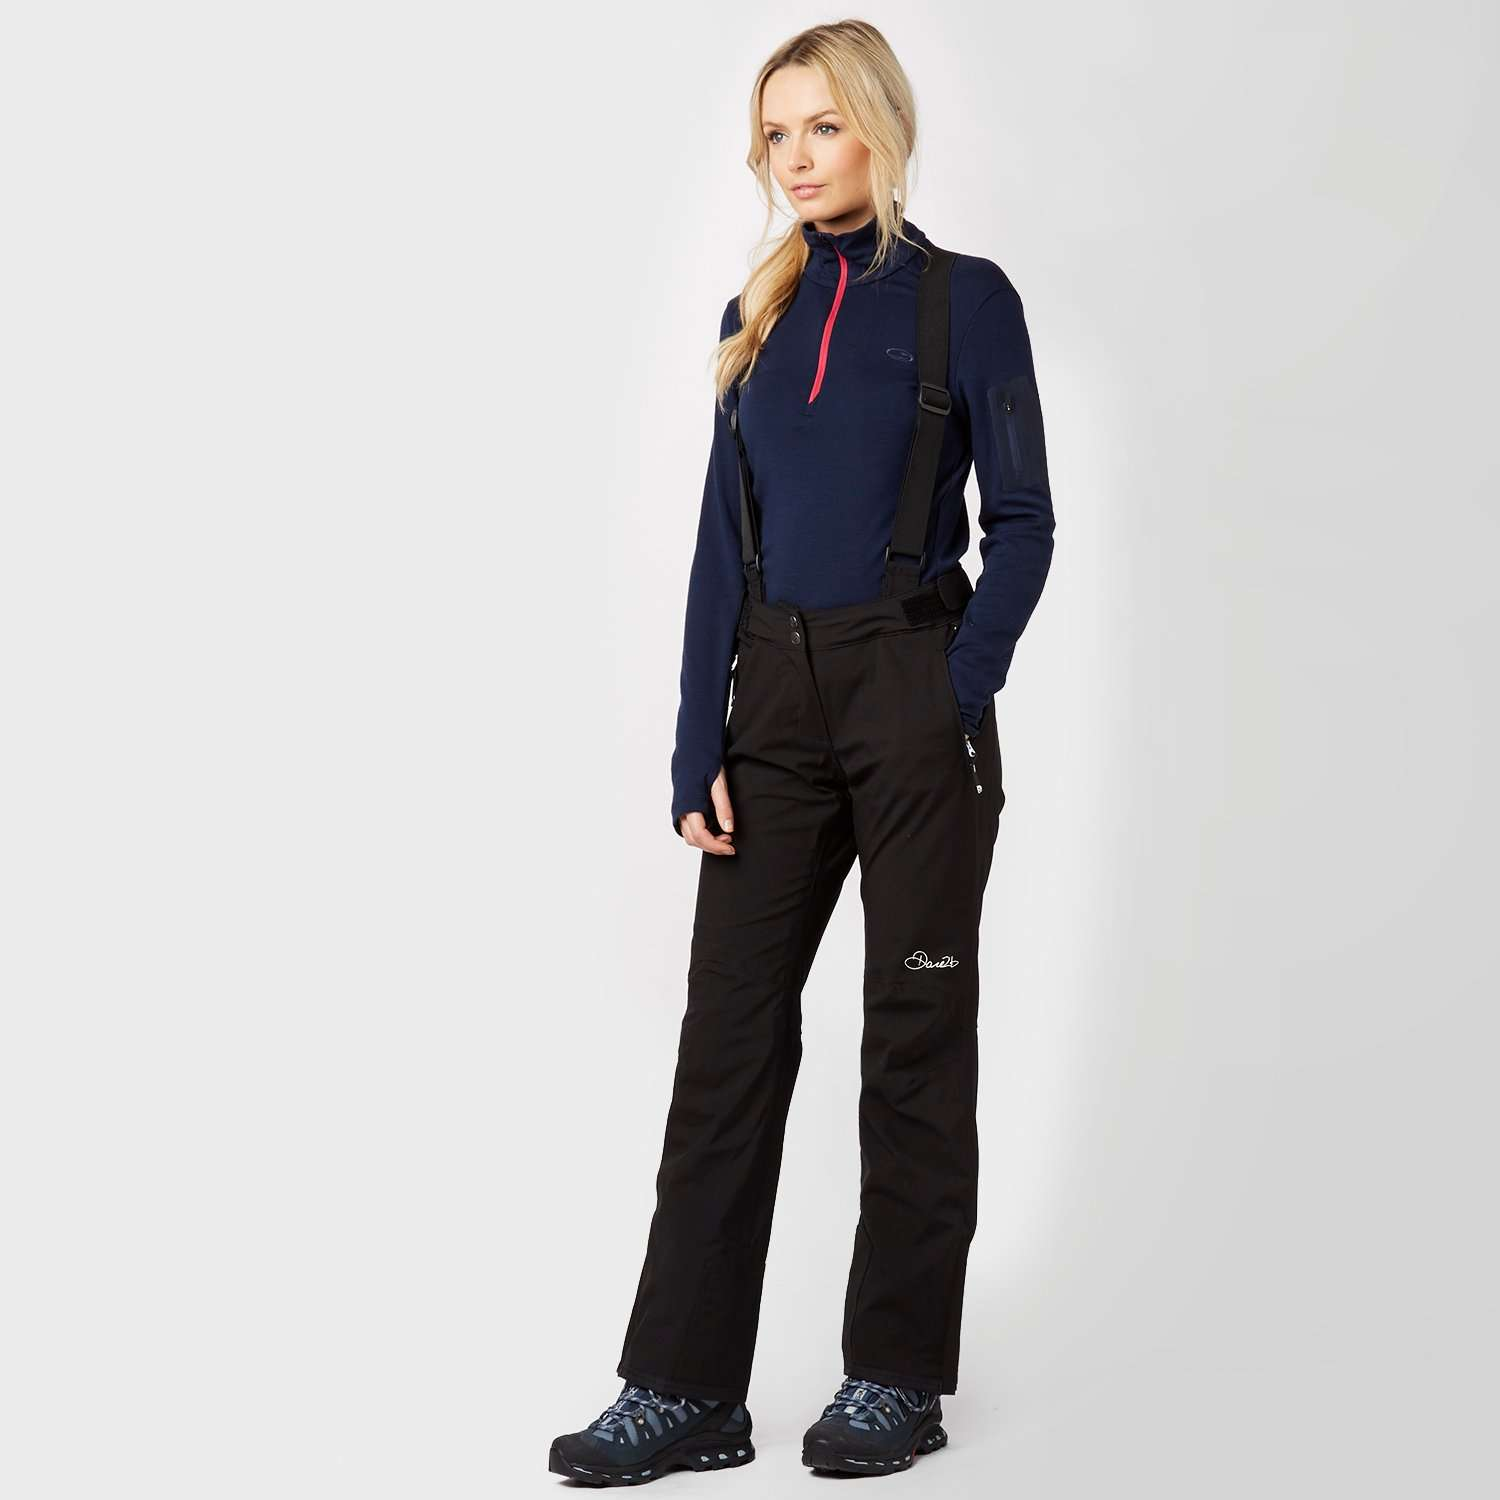 DARE 2B Women's Stand For Ski Pants